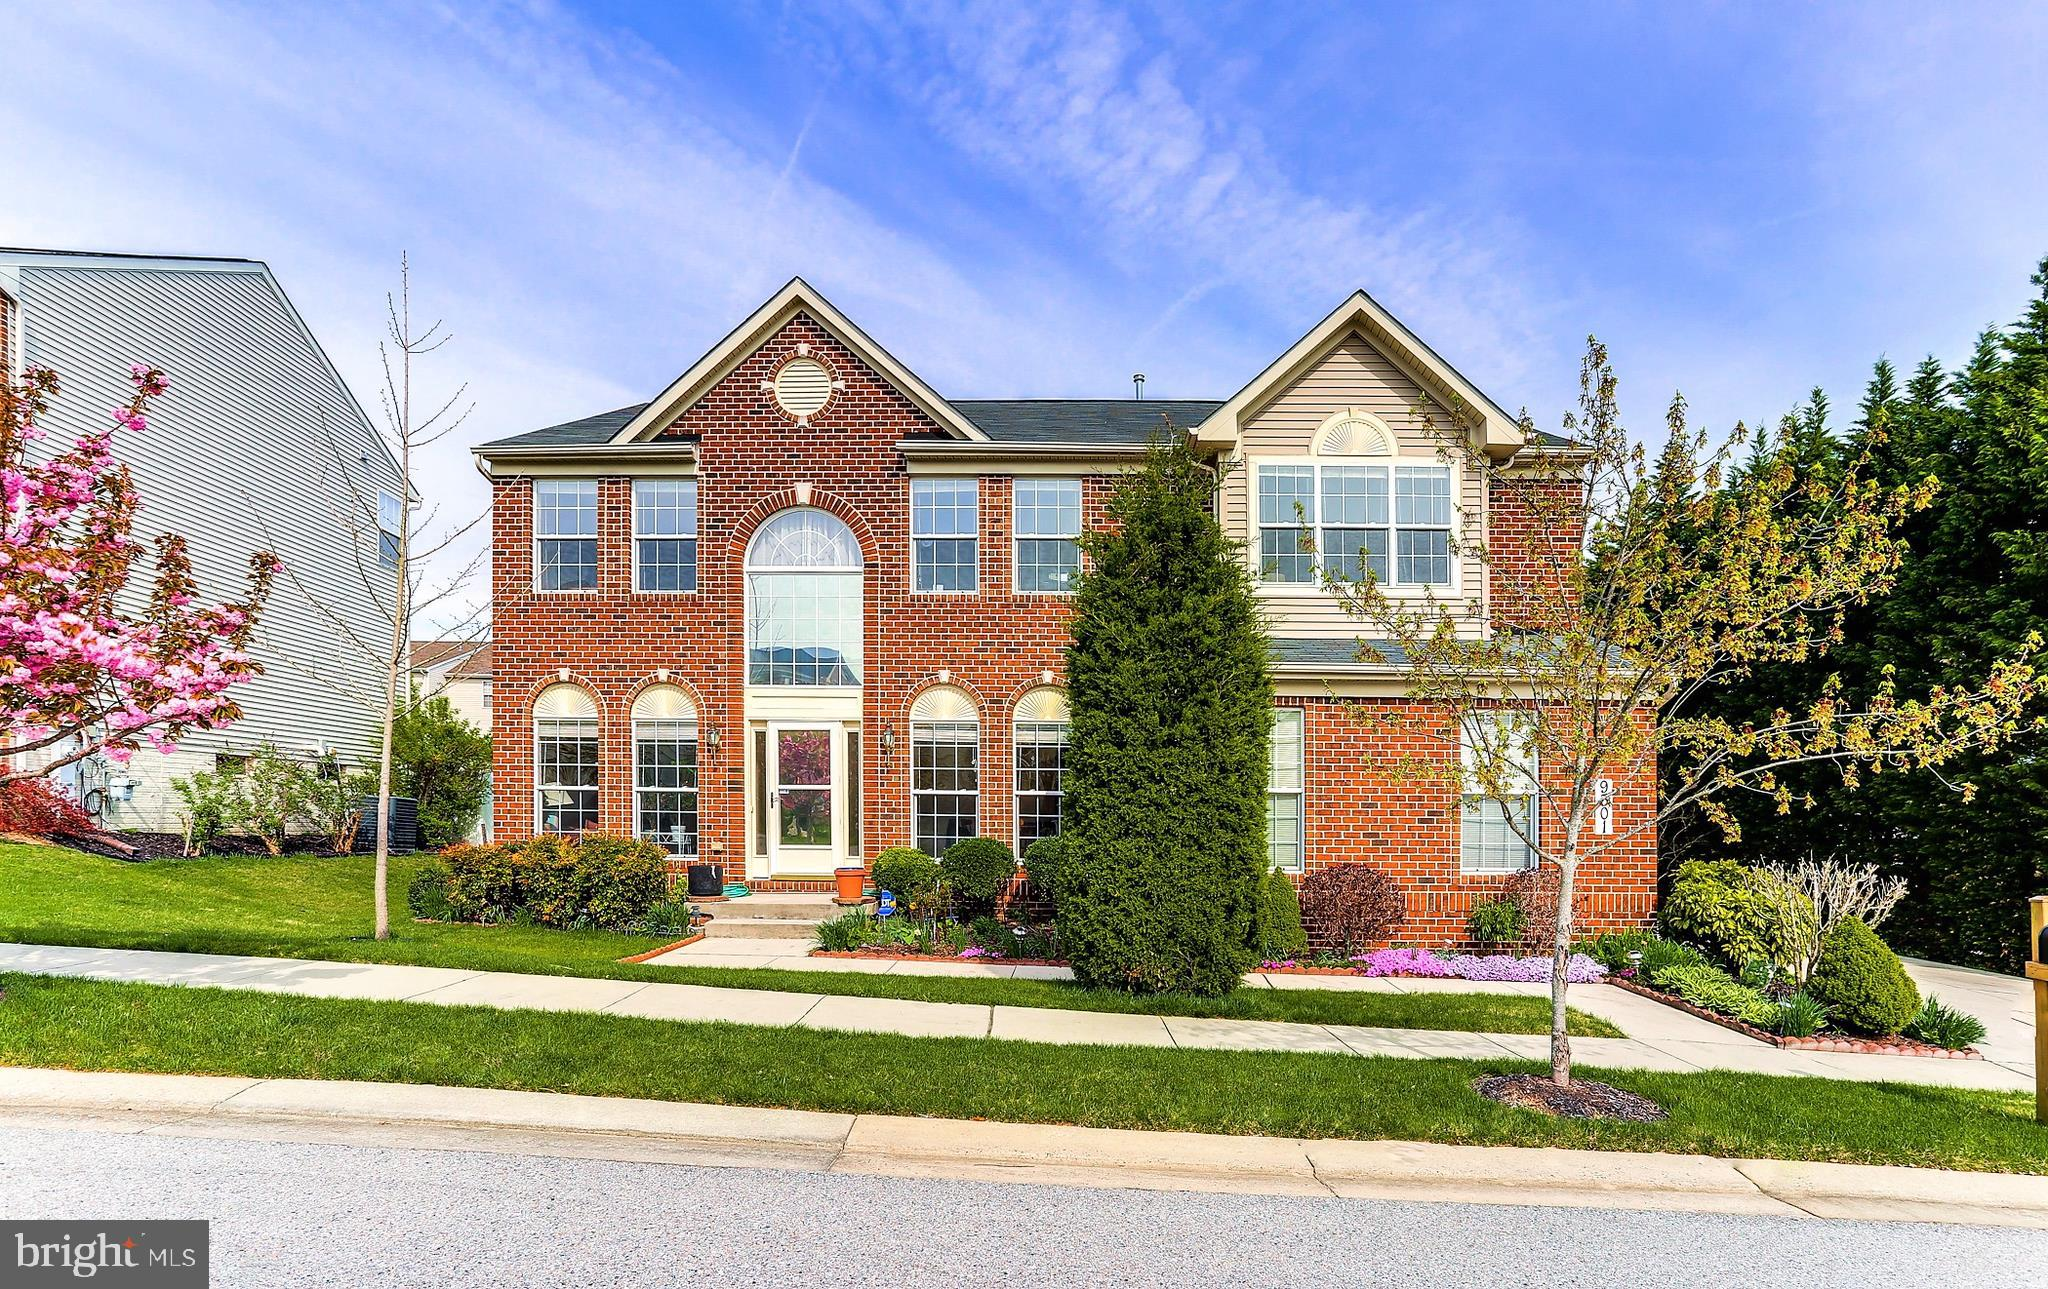 9301 GEORGIA BELLE DRIVE, PERRY HALL, MD 21128